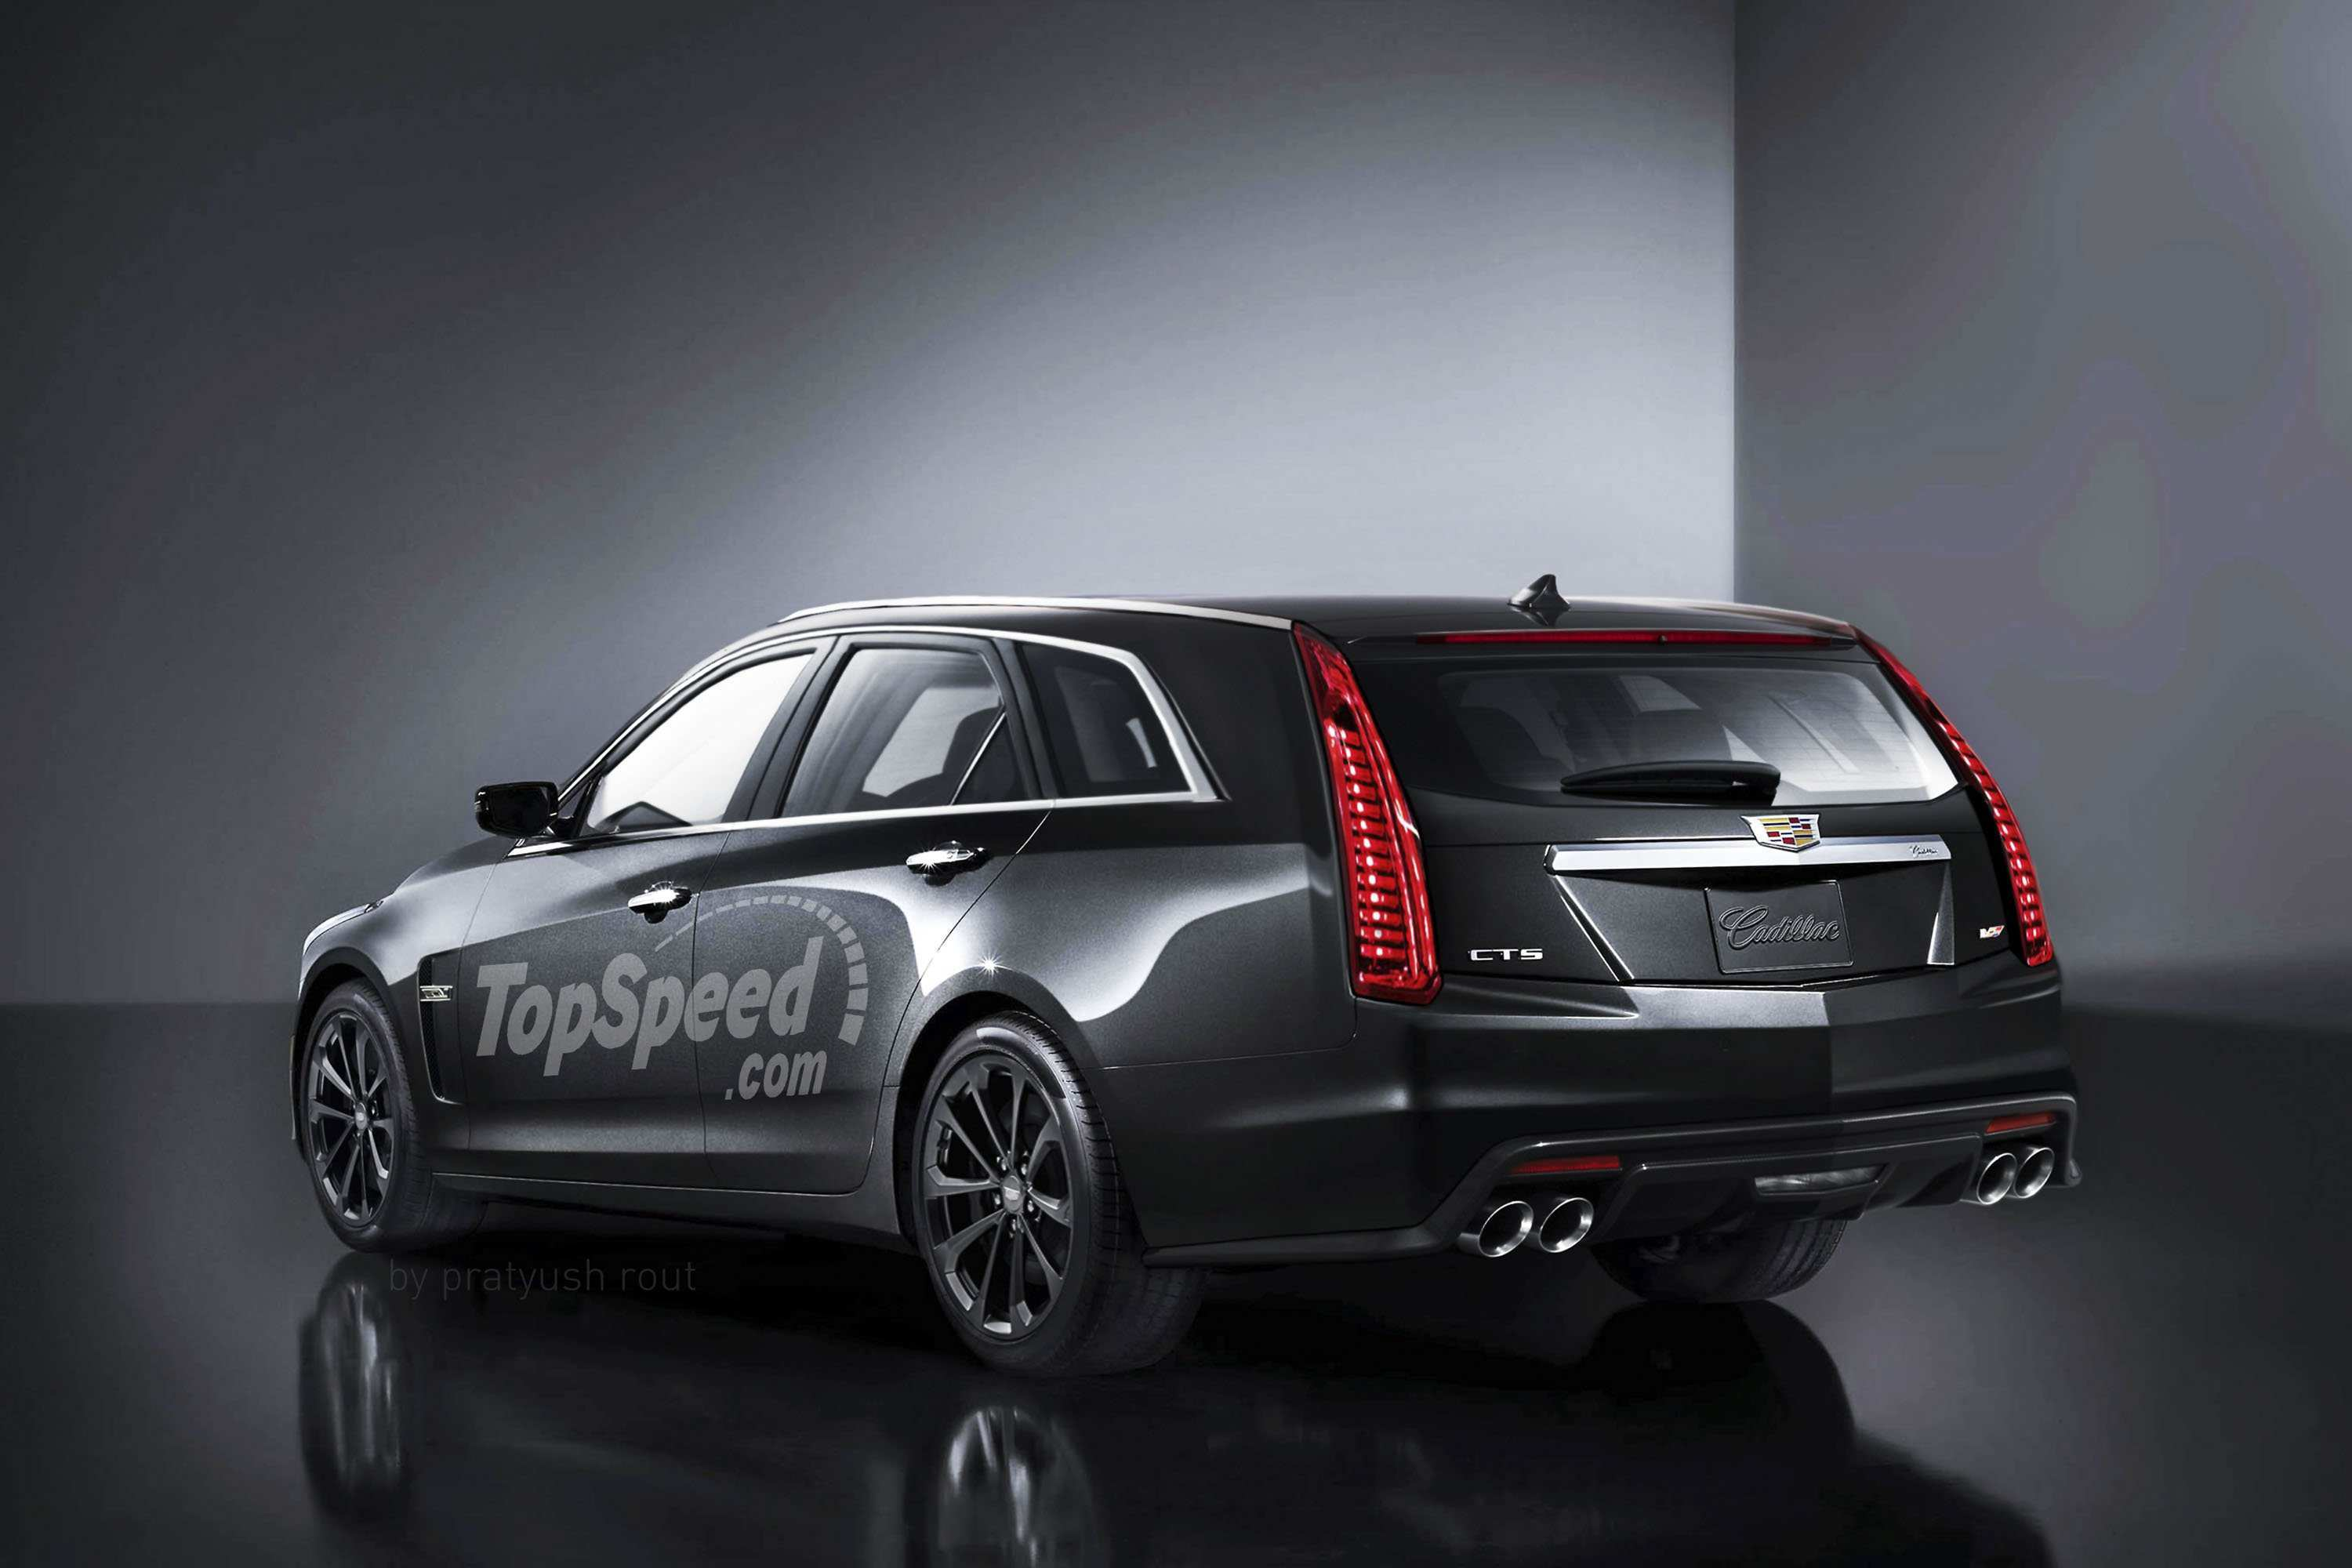 15 New 2020 Cadillac Cts V Price And Release Date